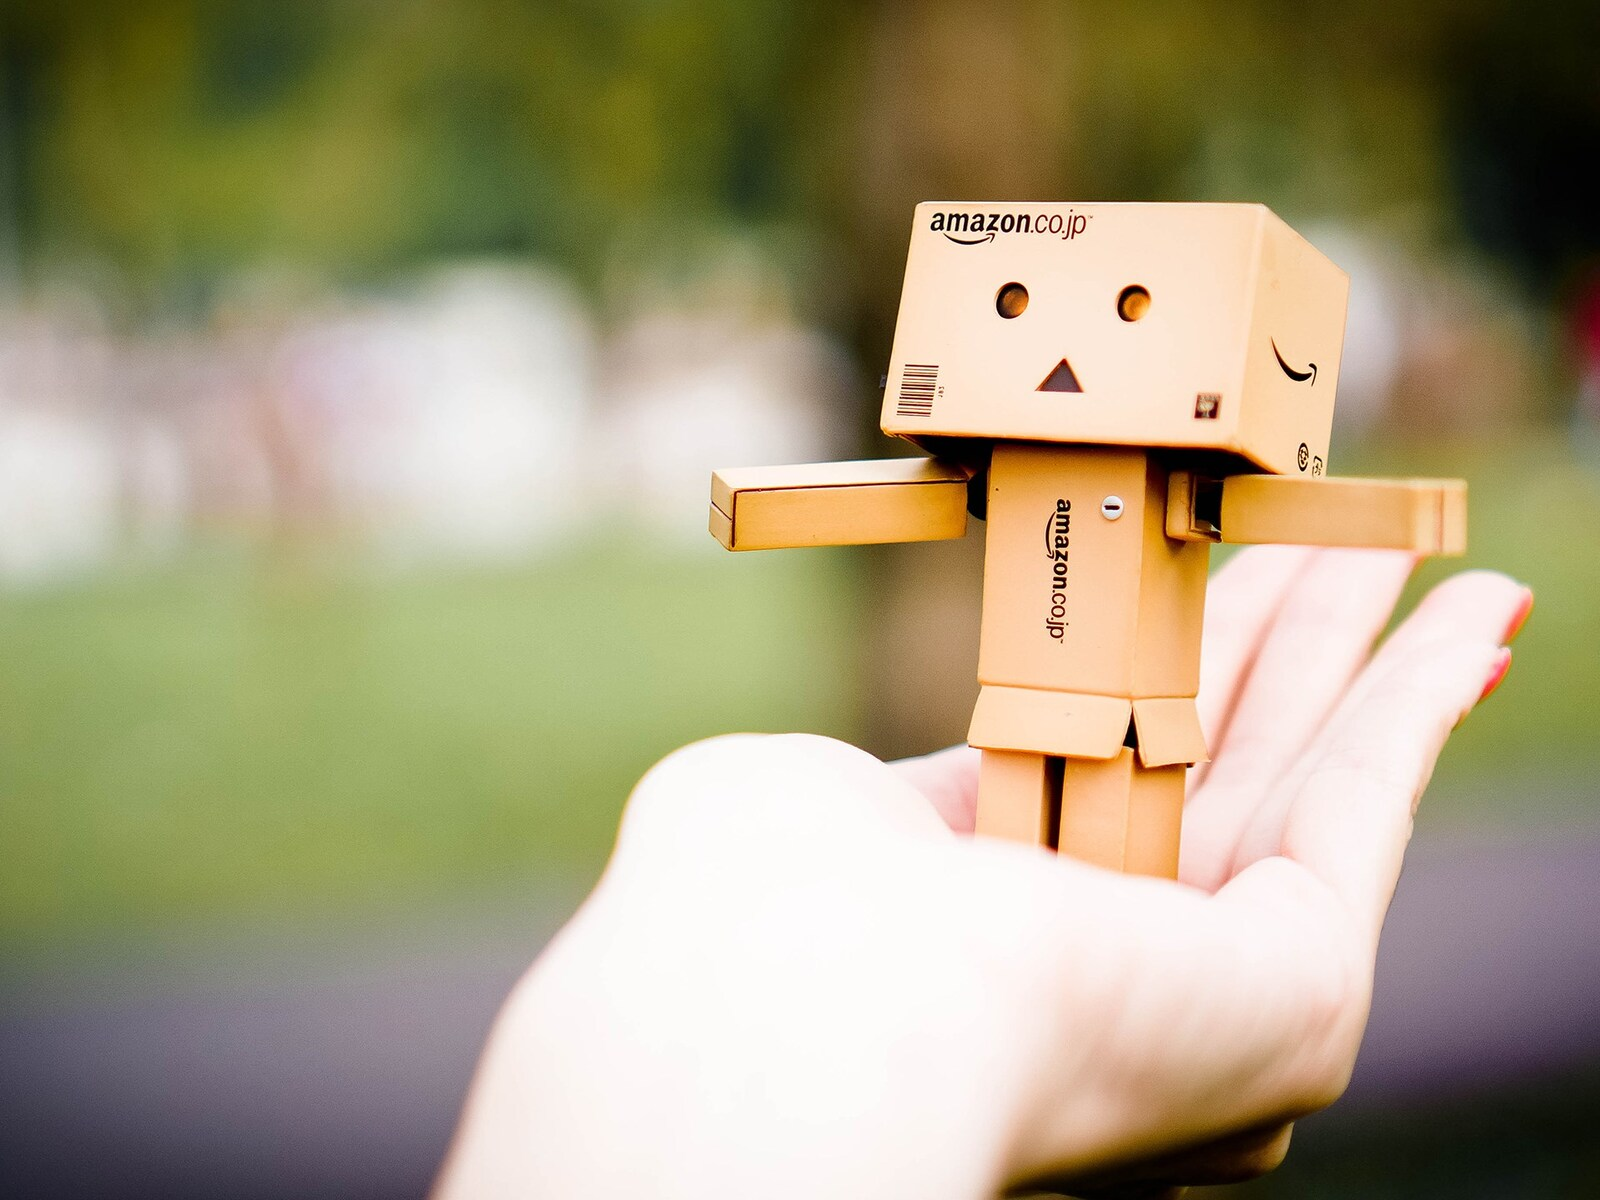 amazon-danbo-4k.jpg